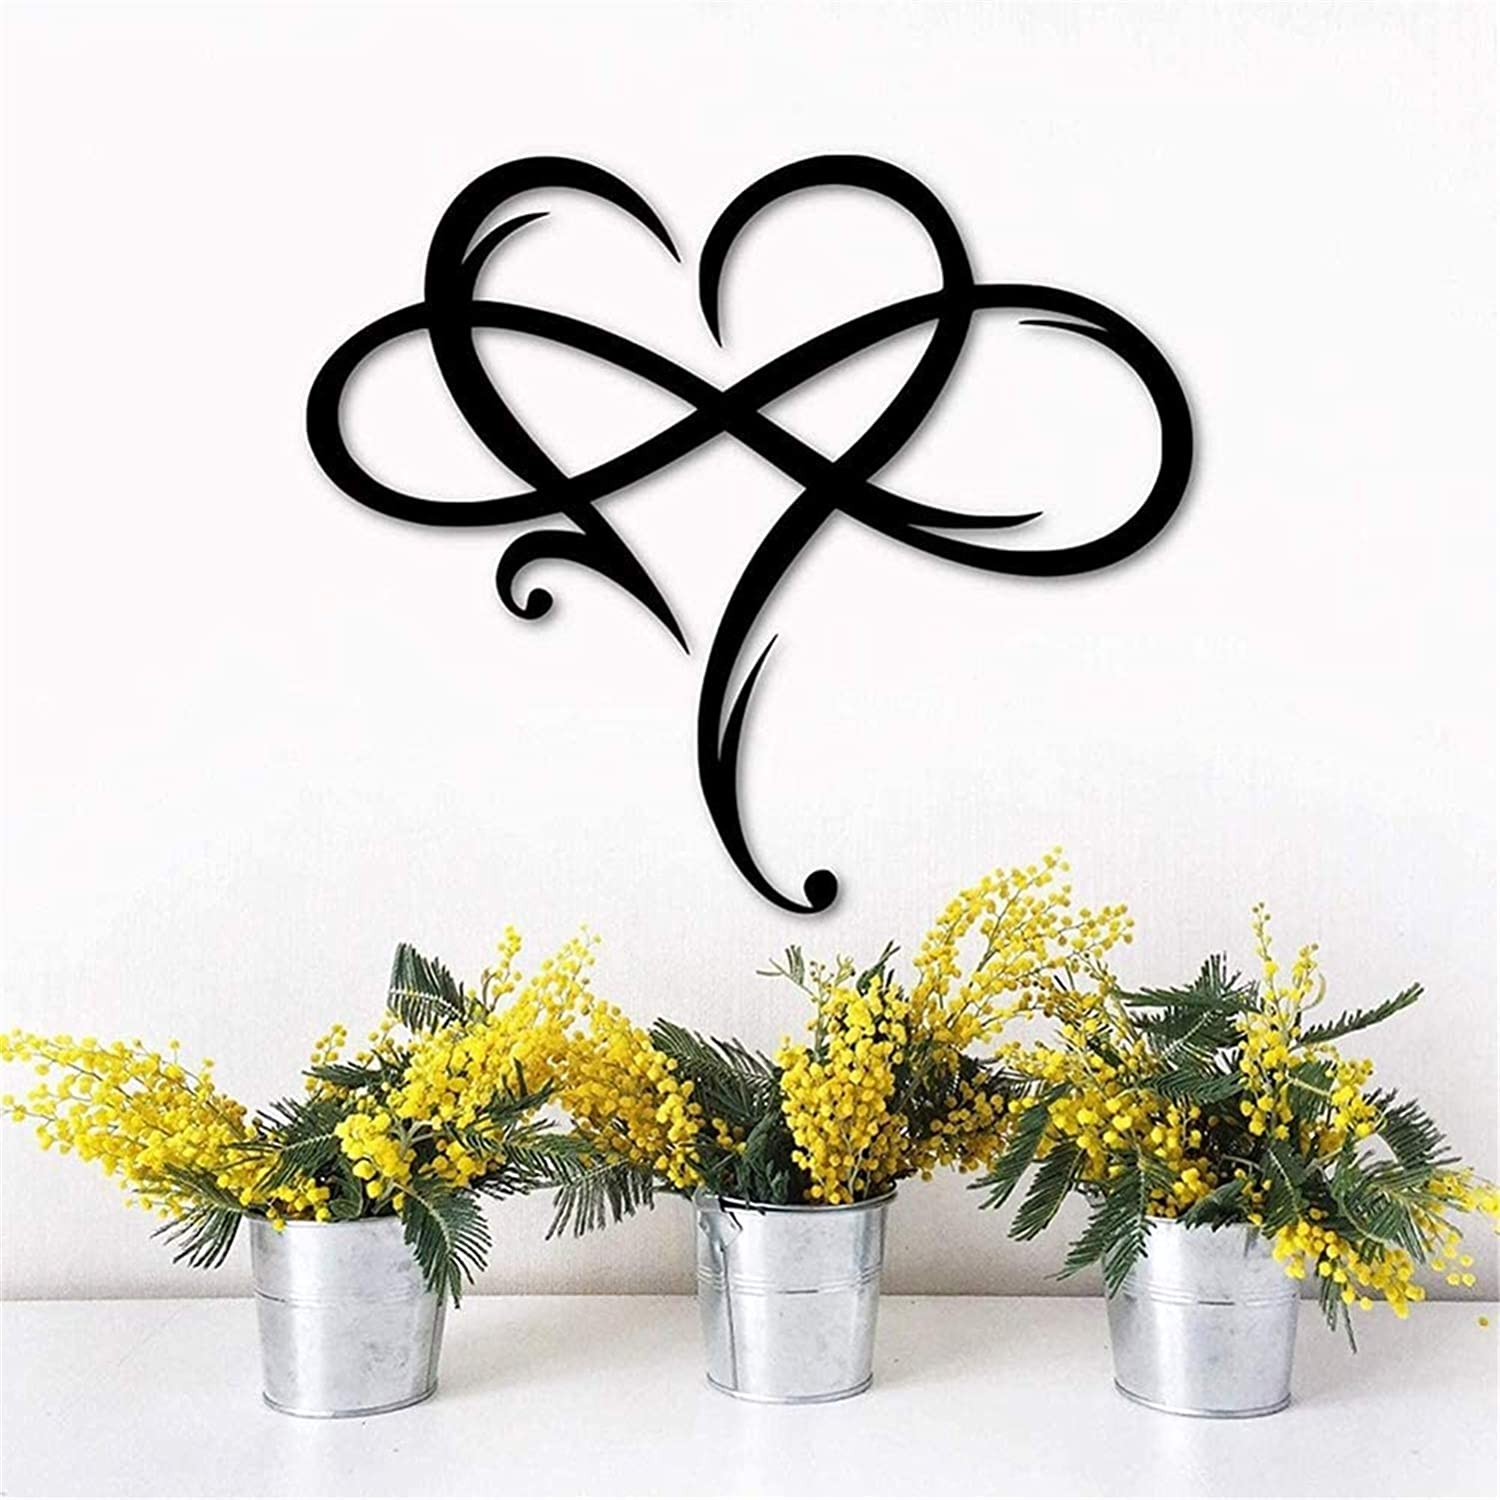 Infinity Heart Steel Wall Decor Metal Wall Art, Metal Infinity Heart Sign, Always and Forever Infinity Symbol and Heart Wall Decor for Living Room Sculptures, Wedding Metal Wall Decals (Large)